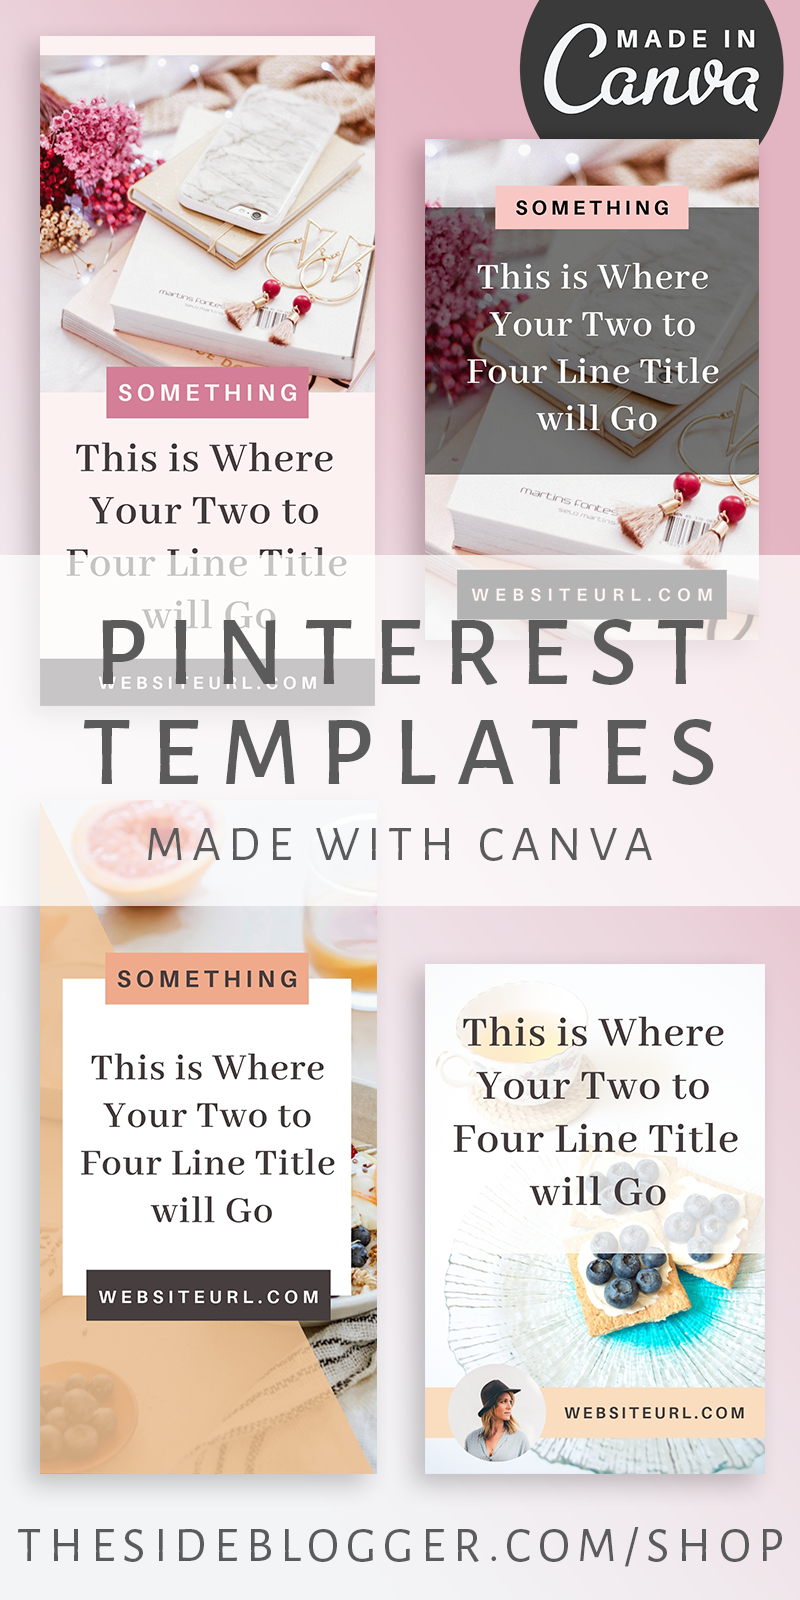 Pinterest templates made in Canva. 12 templates, two sizes. Save time and attract potential clients and the perfect and ideal audience to your blog or business website with these beautifully designed pins. Easily customize with Canva to match your branding! - The Side Blogger #pinterest #canva #blogging #contentmarketing #digitalmarketing